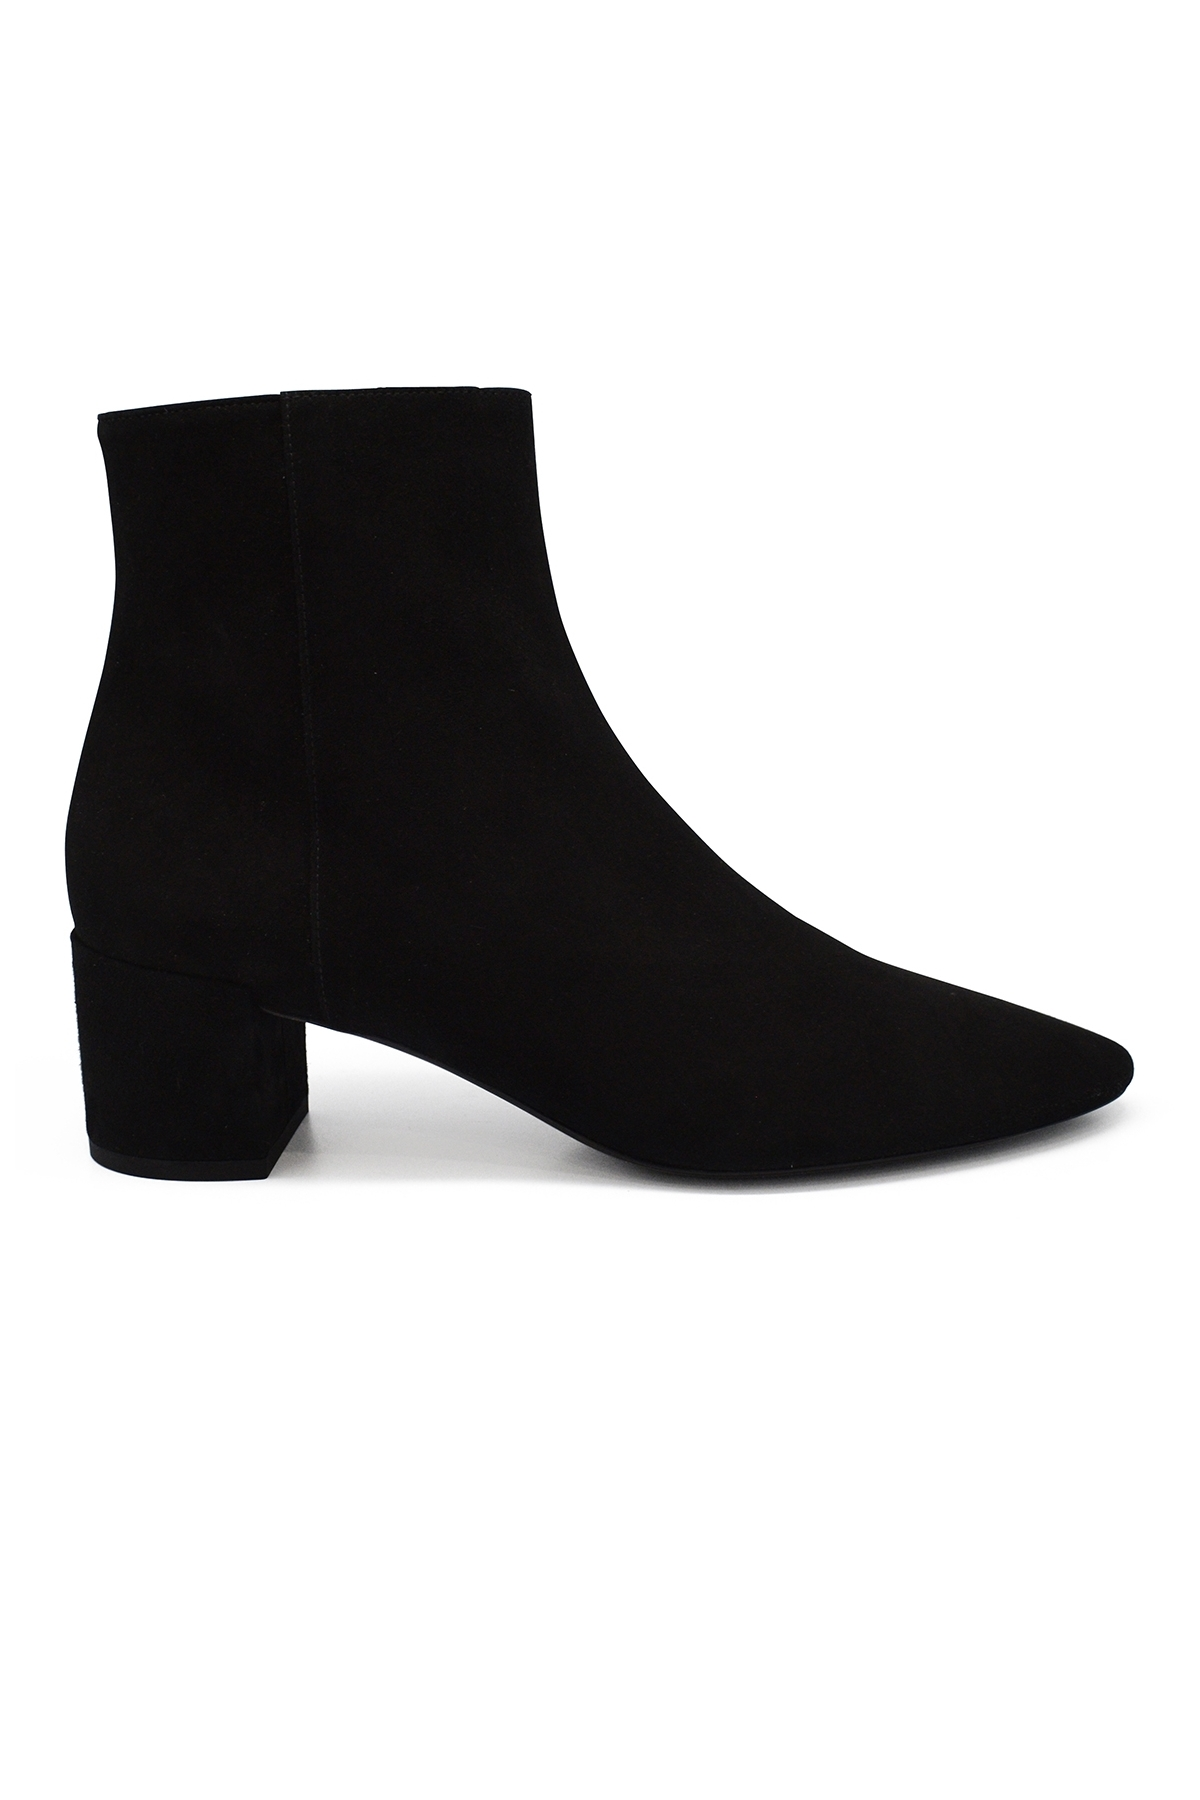 Loulou 50 boots